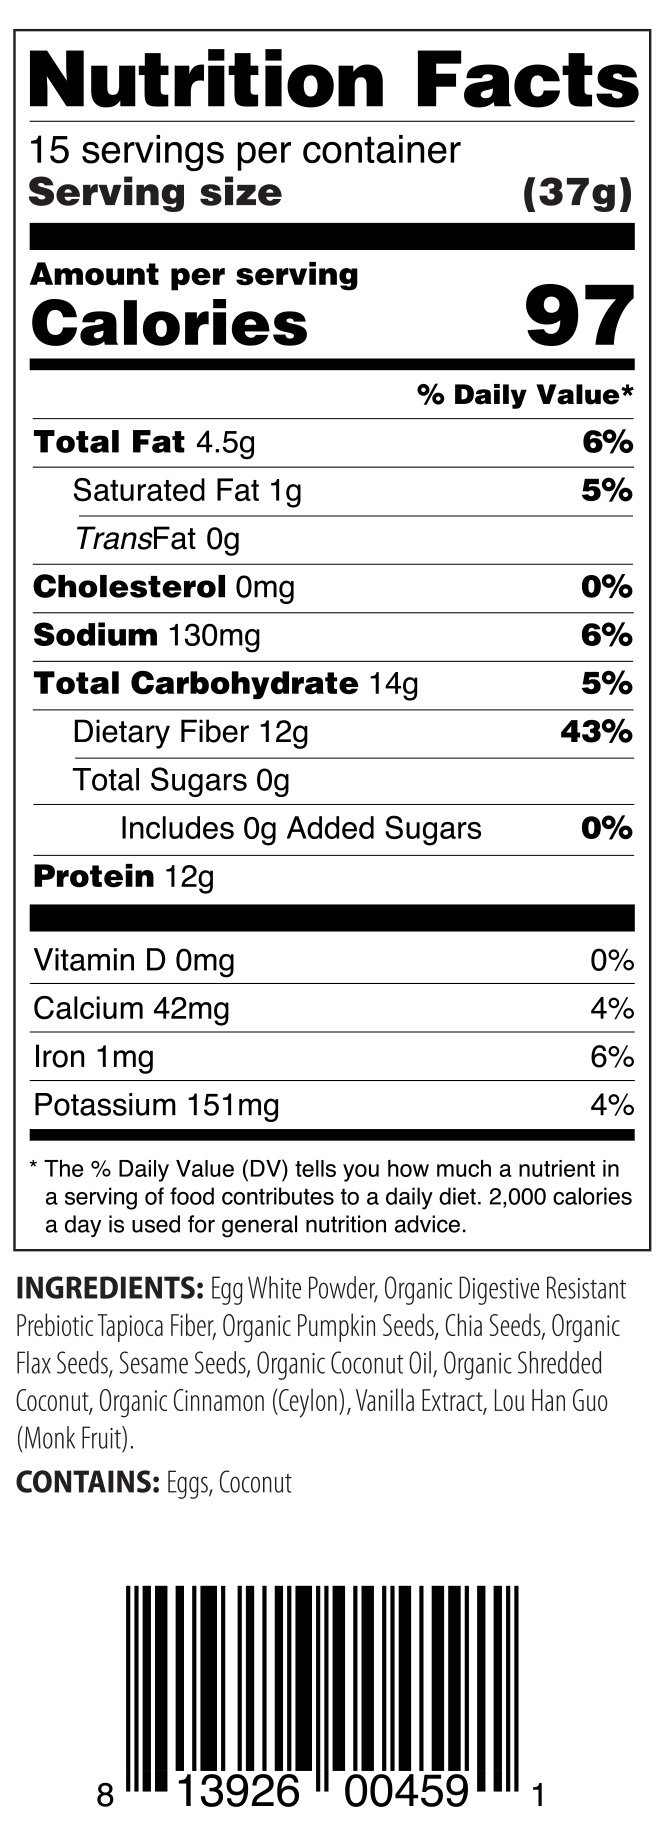 ProGranola 12g Protein Cereal Vanilla Cinn (Paleo : Low Net Carb : Gluten Free : Grain Free) (6 Pack) by Julian Bakery (Image #2)